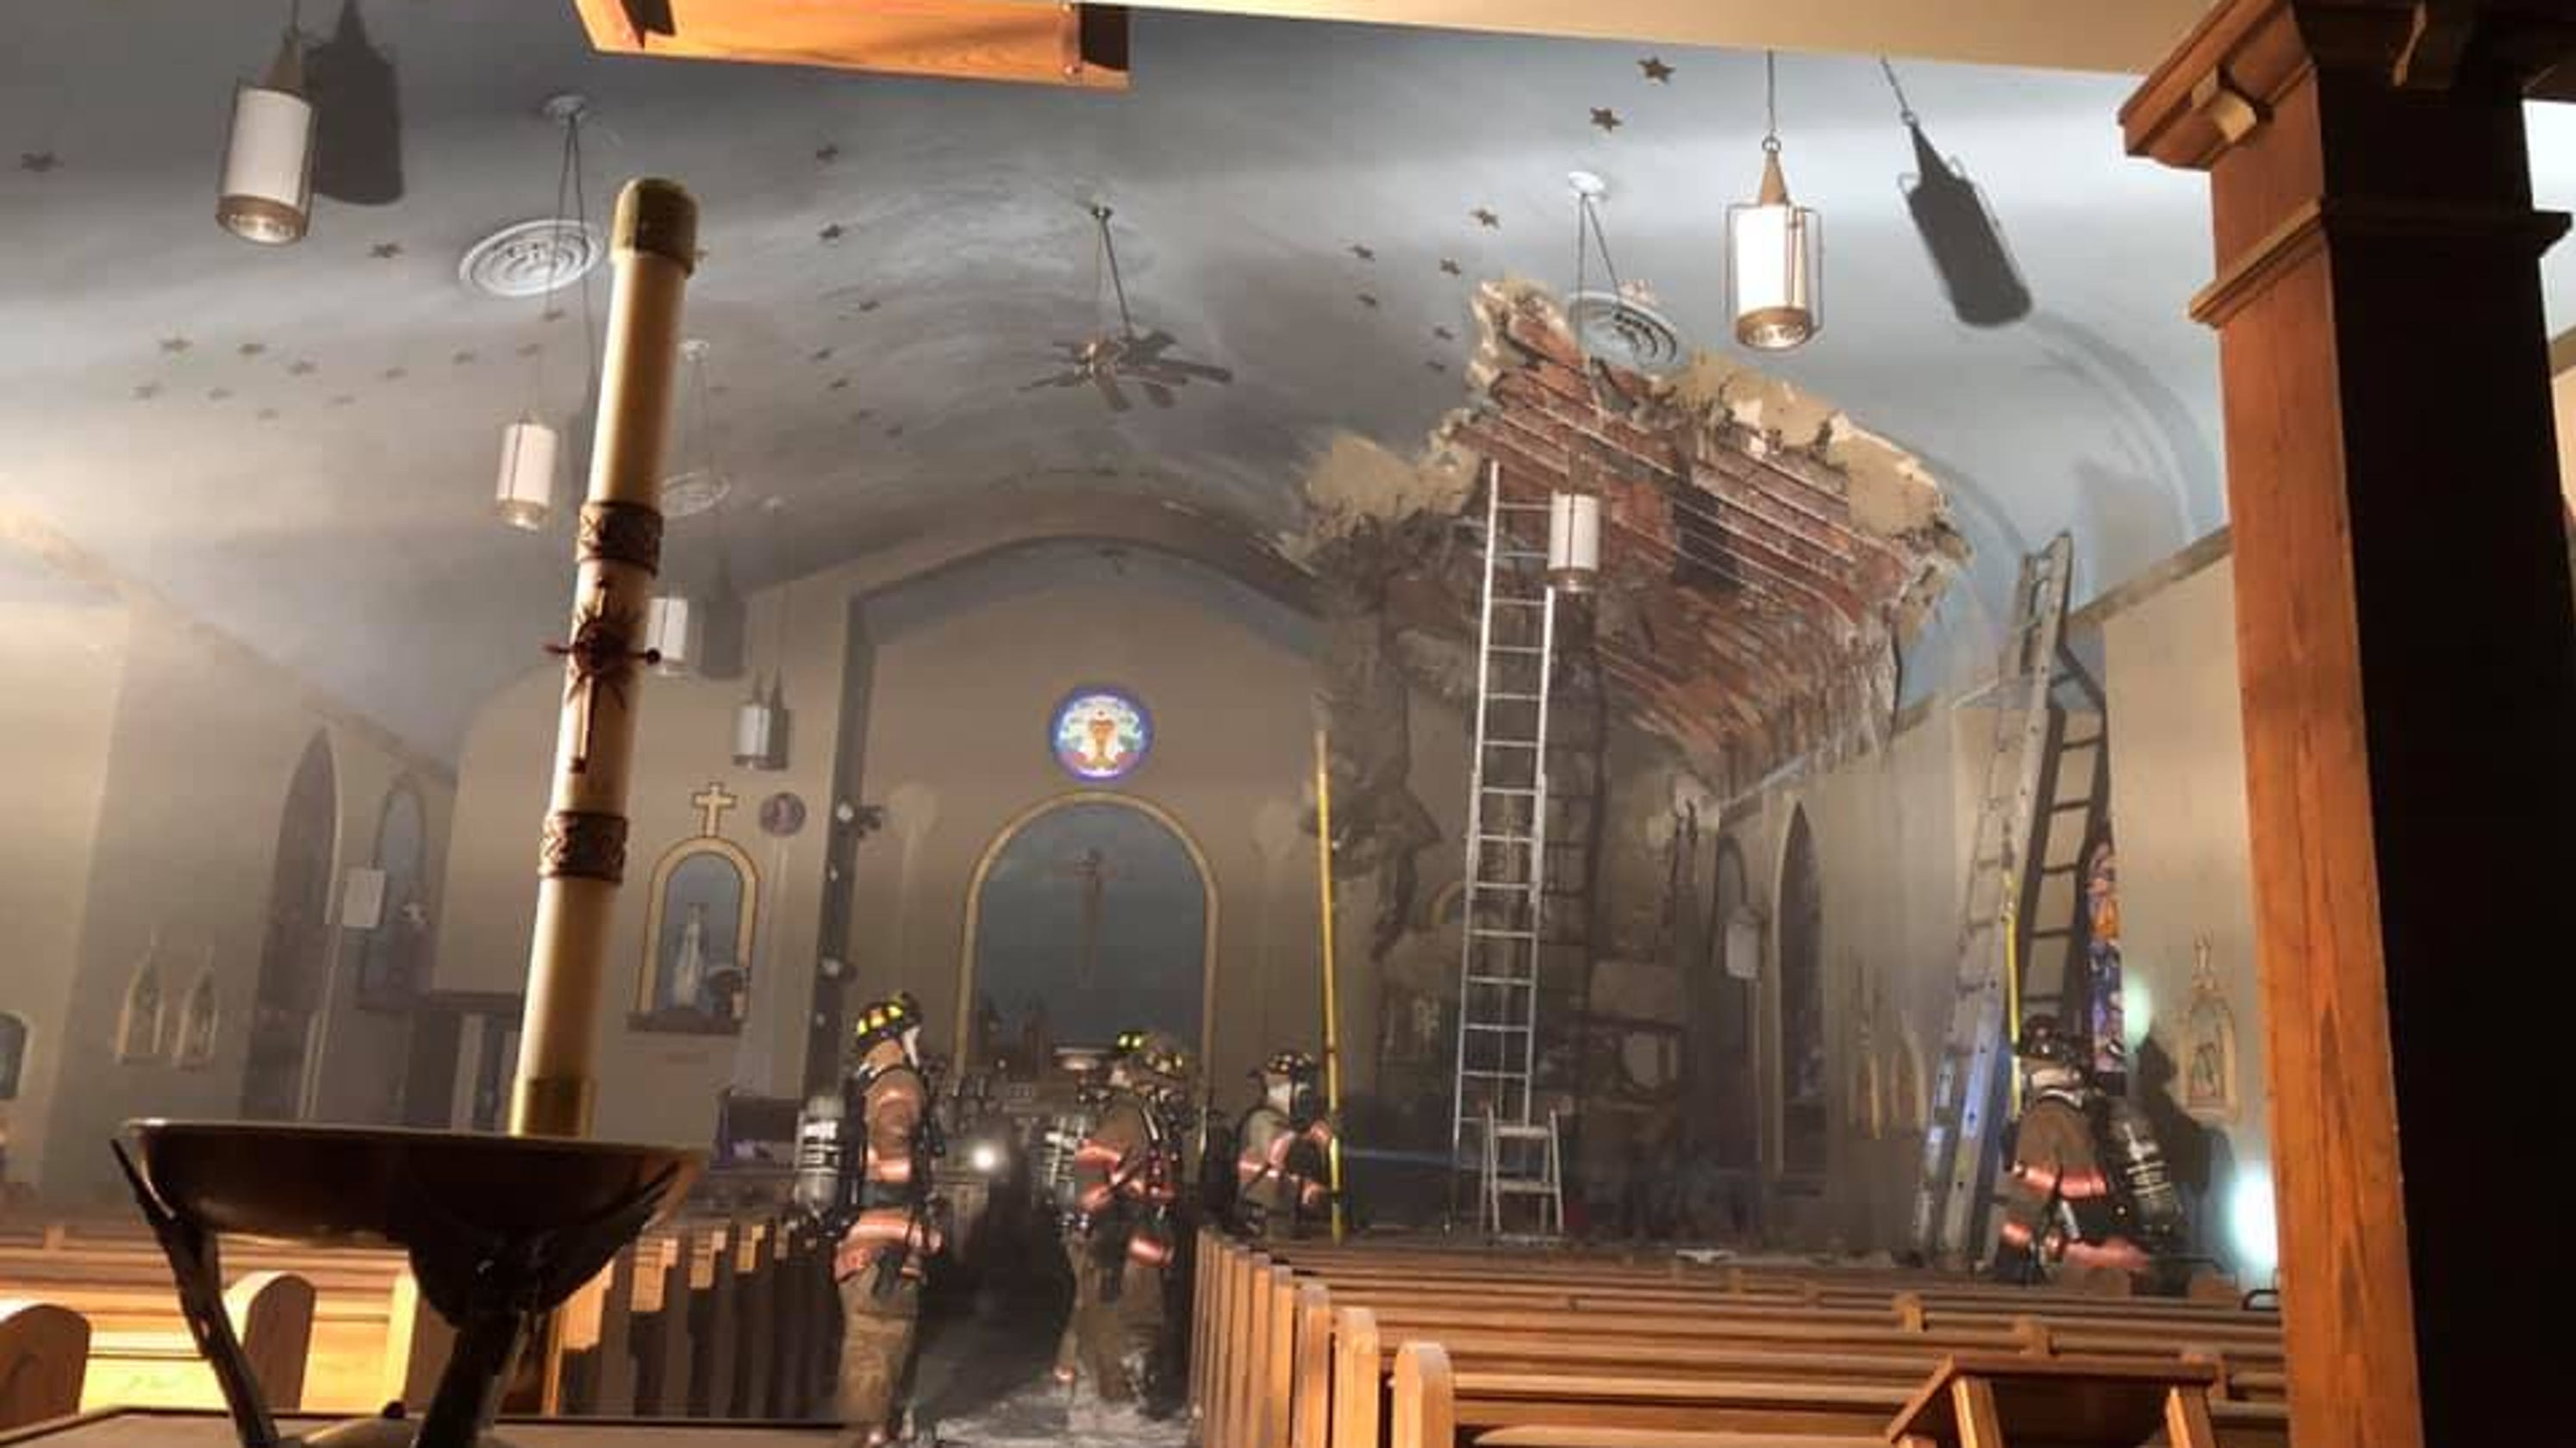 Our Lady of Guadalupe: Historic church fire started by candle